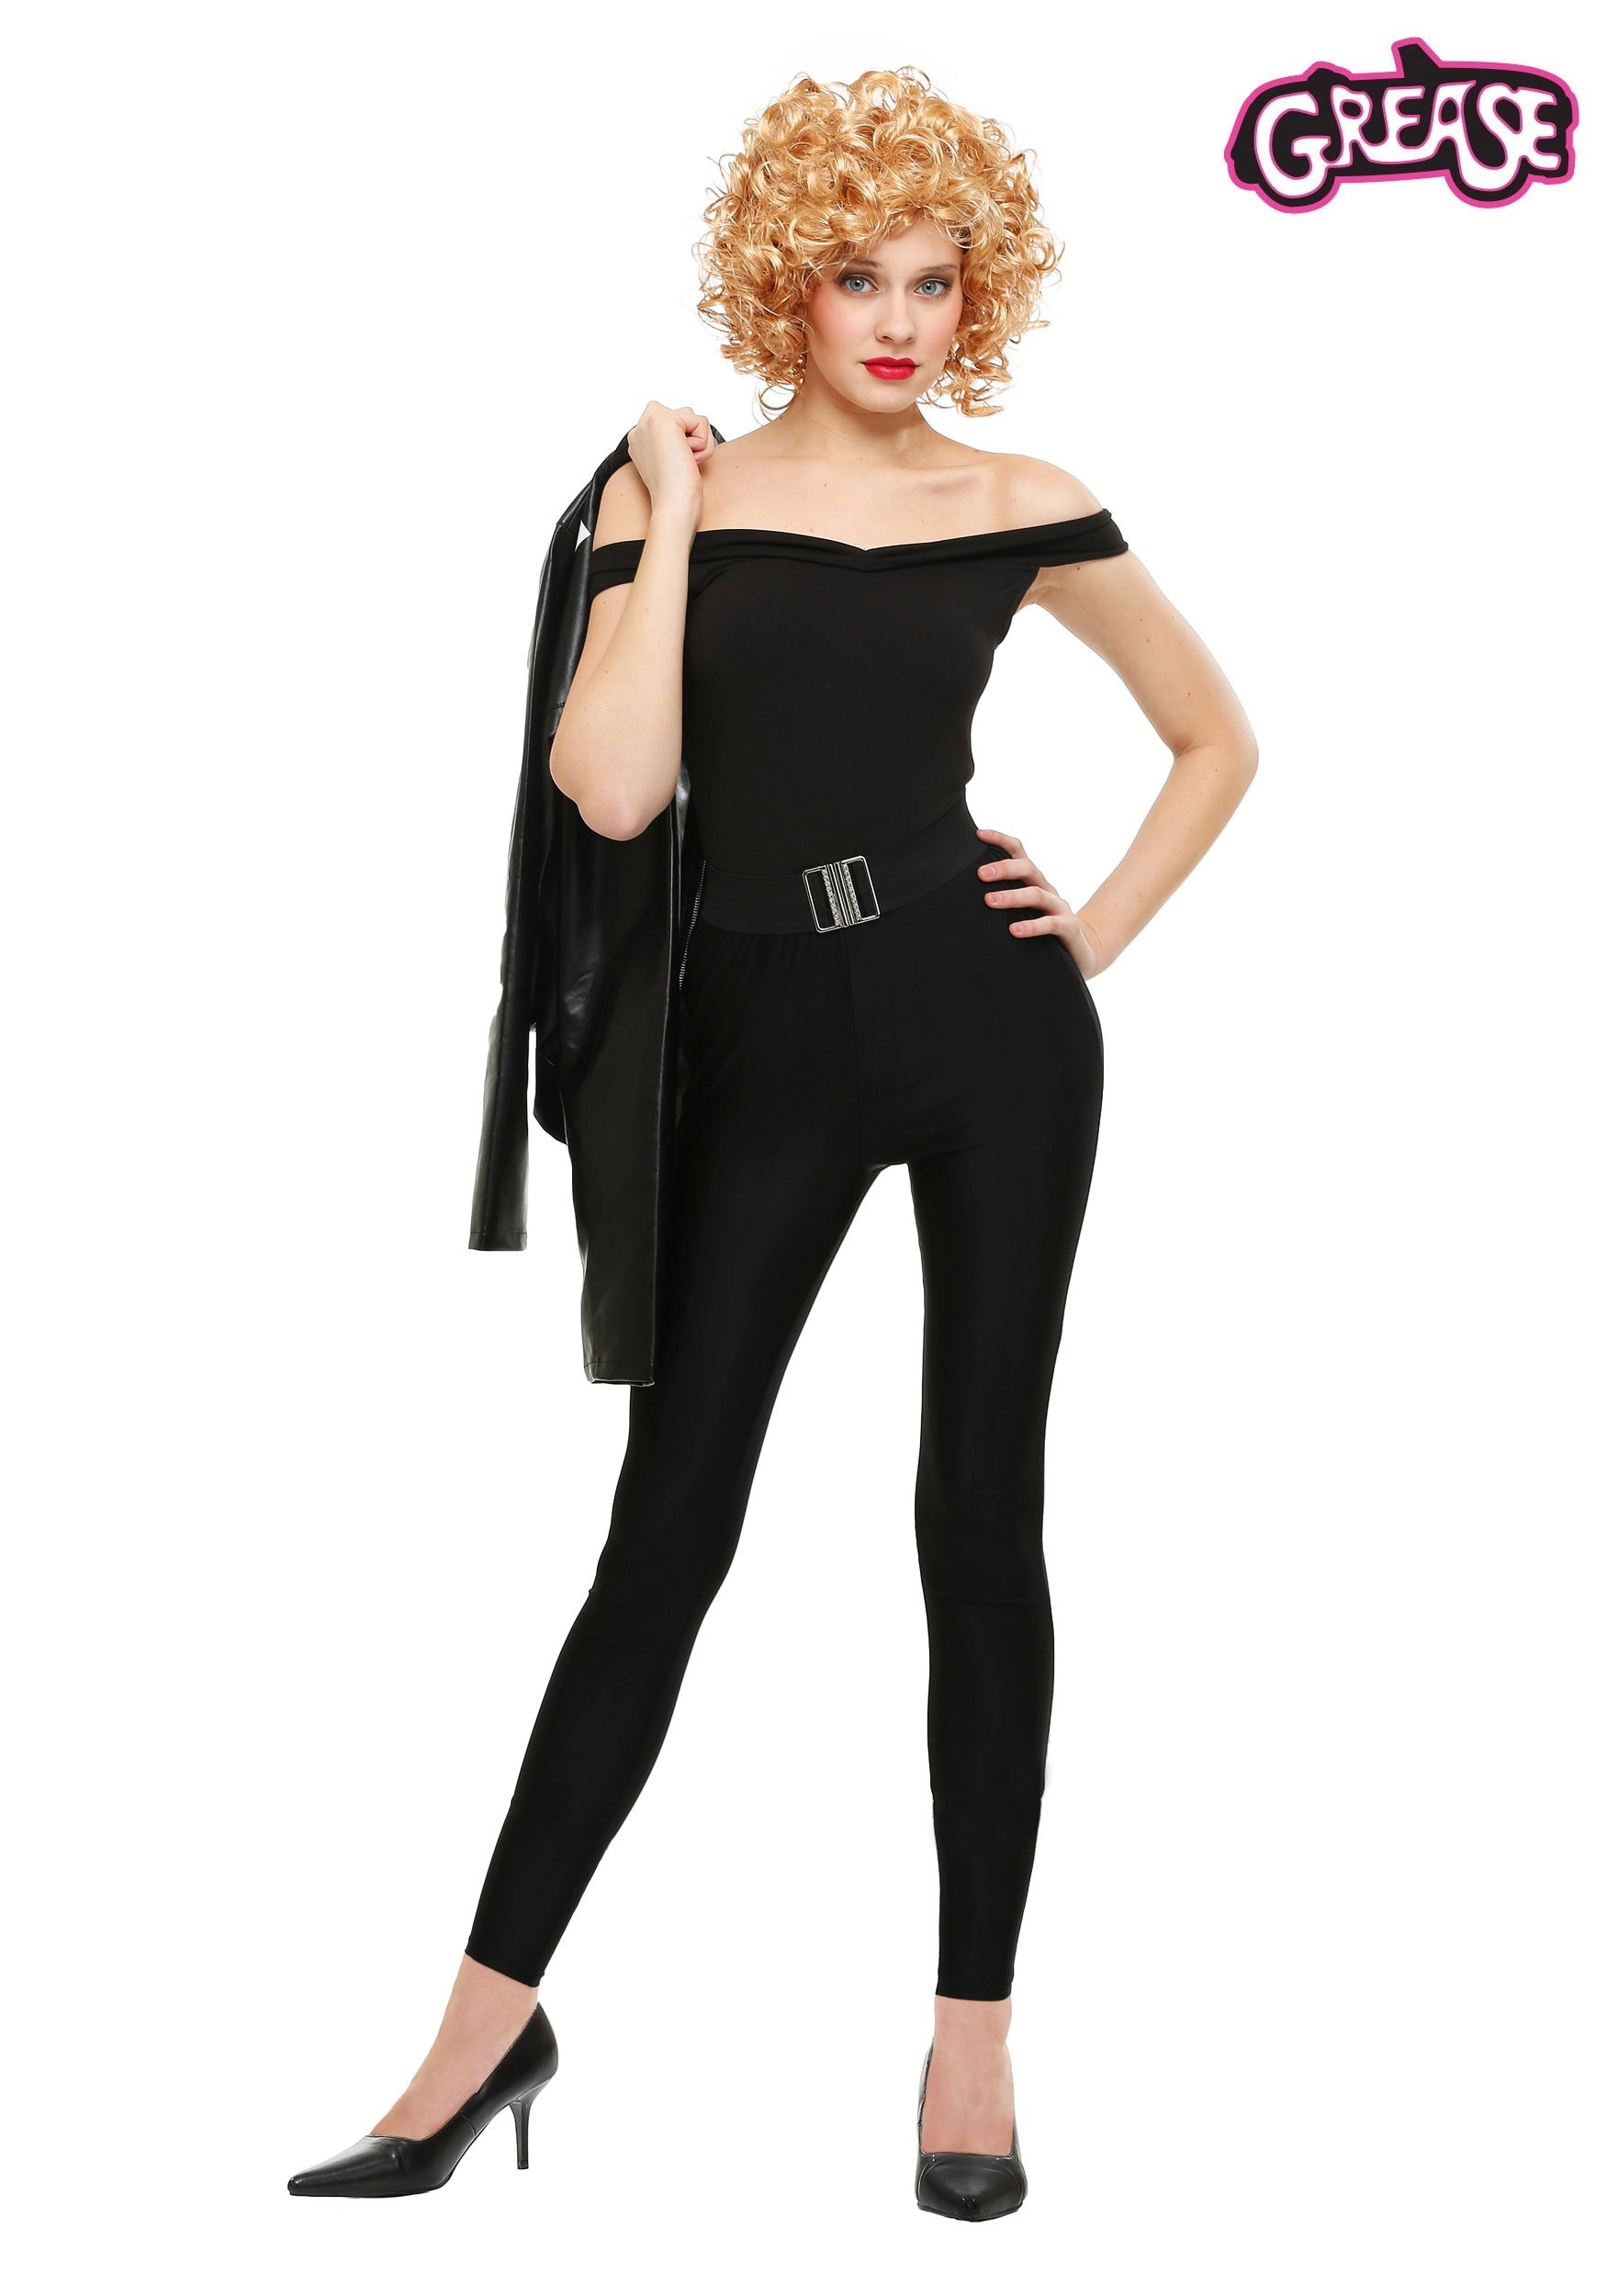 grease bad sandy womens costume - Greece Halloween Costumes